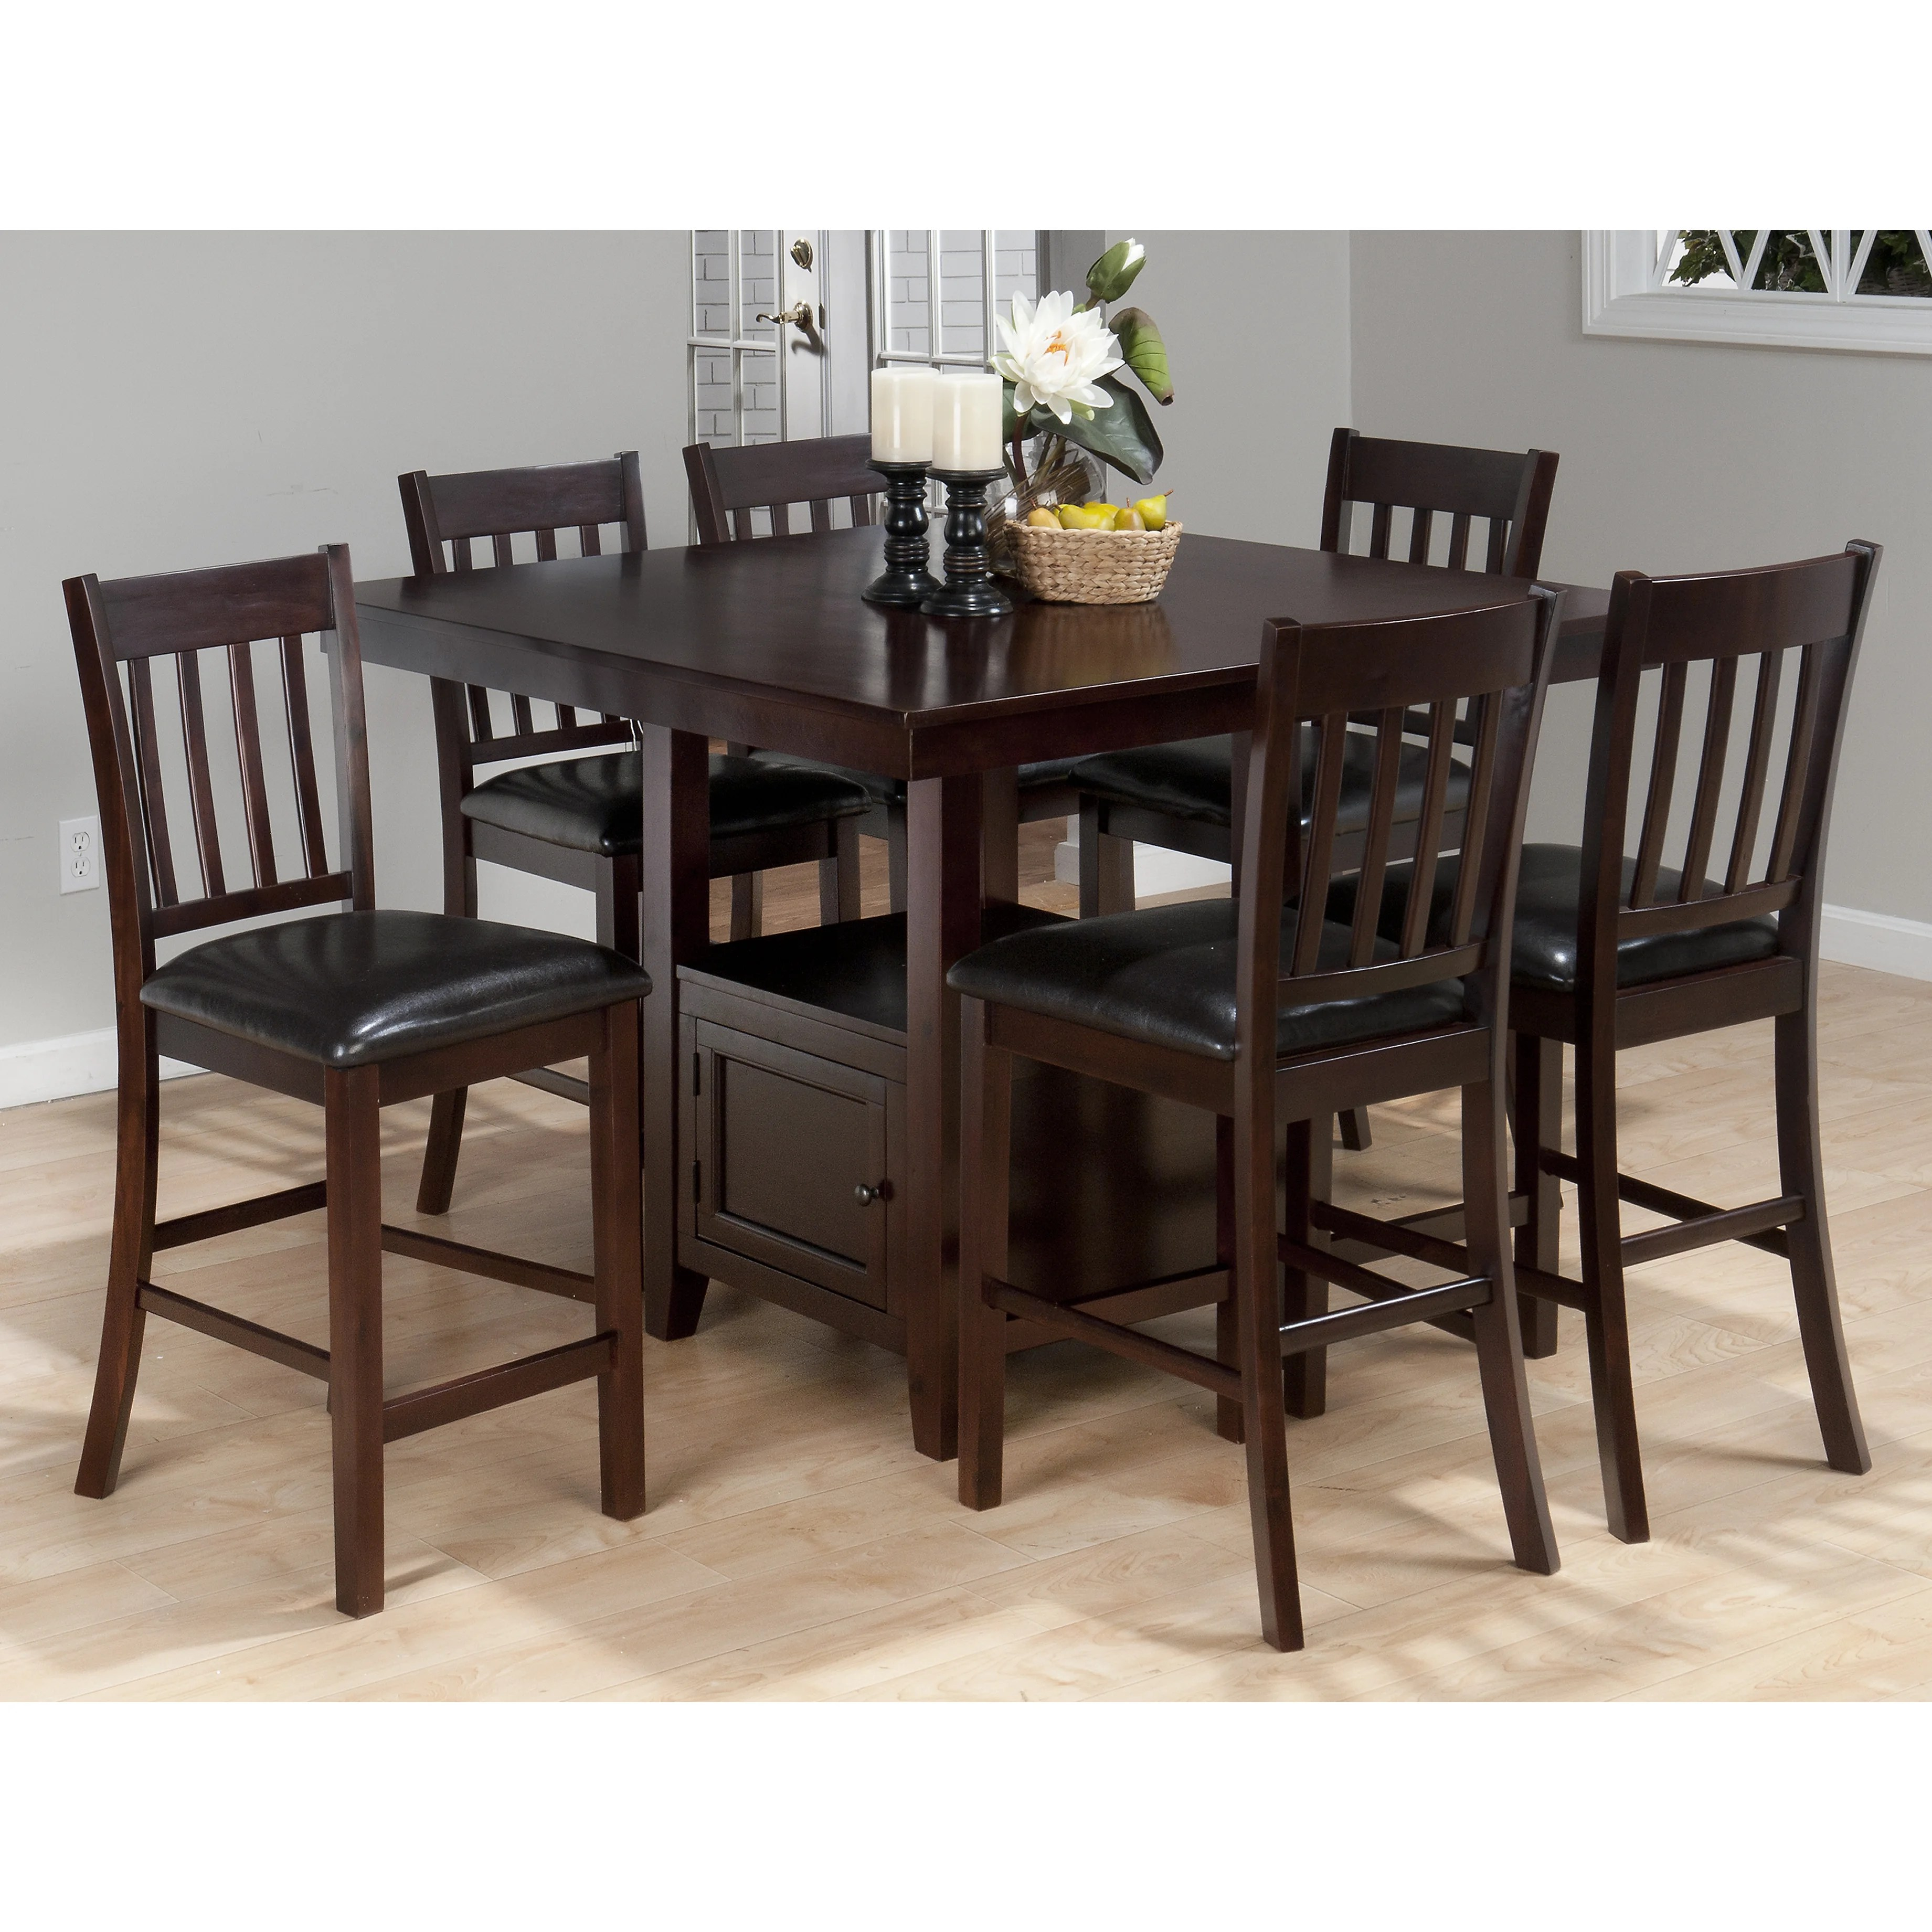 Kitchen and Dining Tables l c O~Pedestal O~Counter+ 5BPO 22 5BD 22+H 5BPC 5D counter height kitchen table QUICK VIEW Oakmeadow Counter Height Dining Table